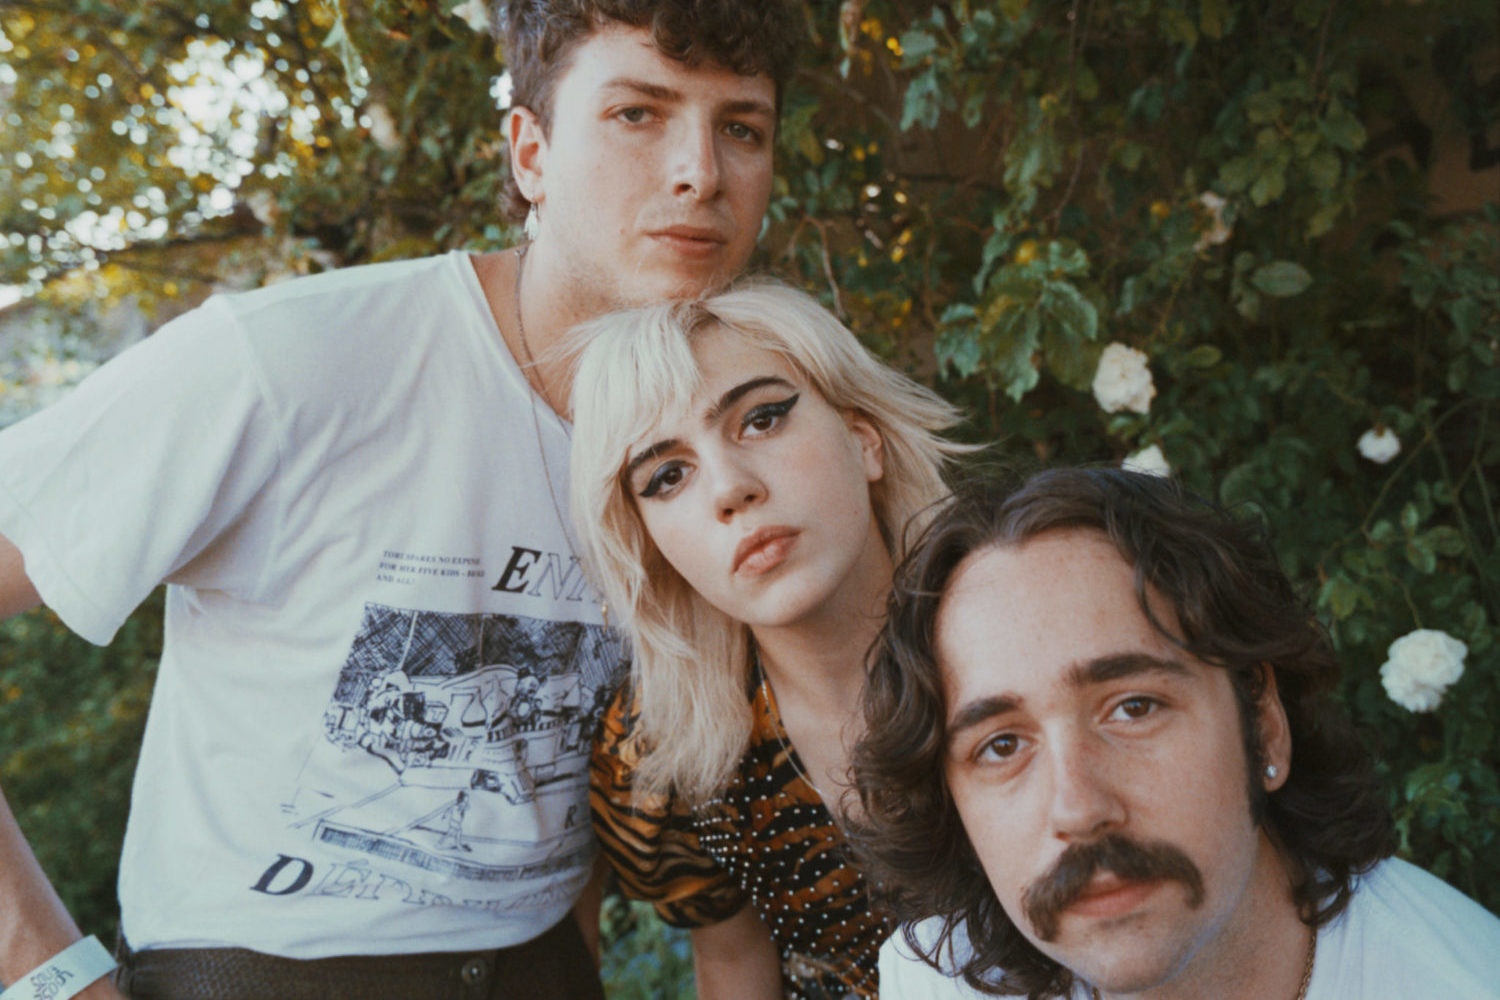 Sunflower Bean in Amsterdam for BLACK CURRANT mag PORTRAITS shot by MICHÈLE MARGOT photography